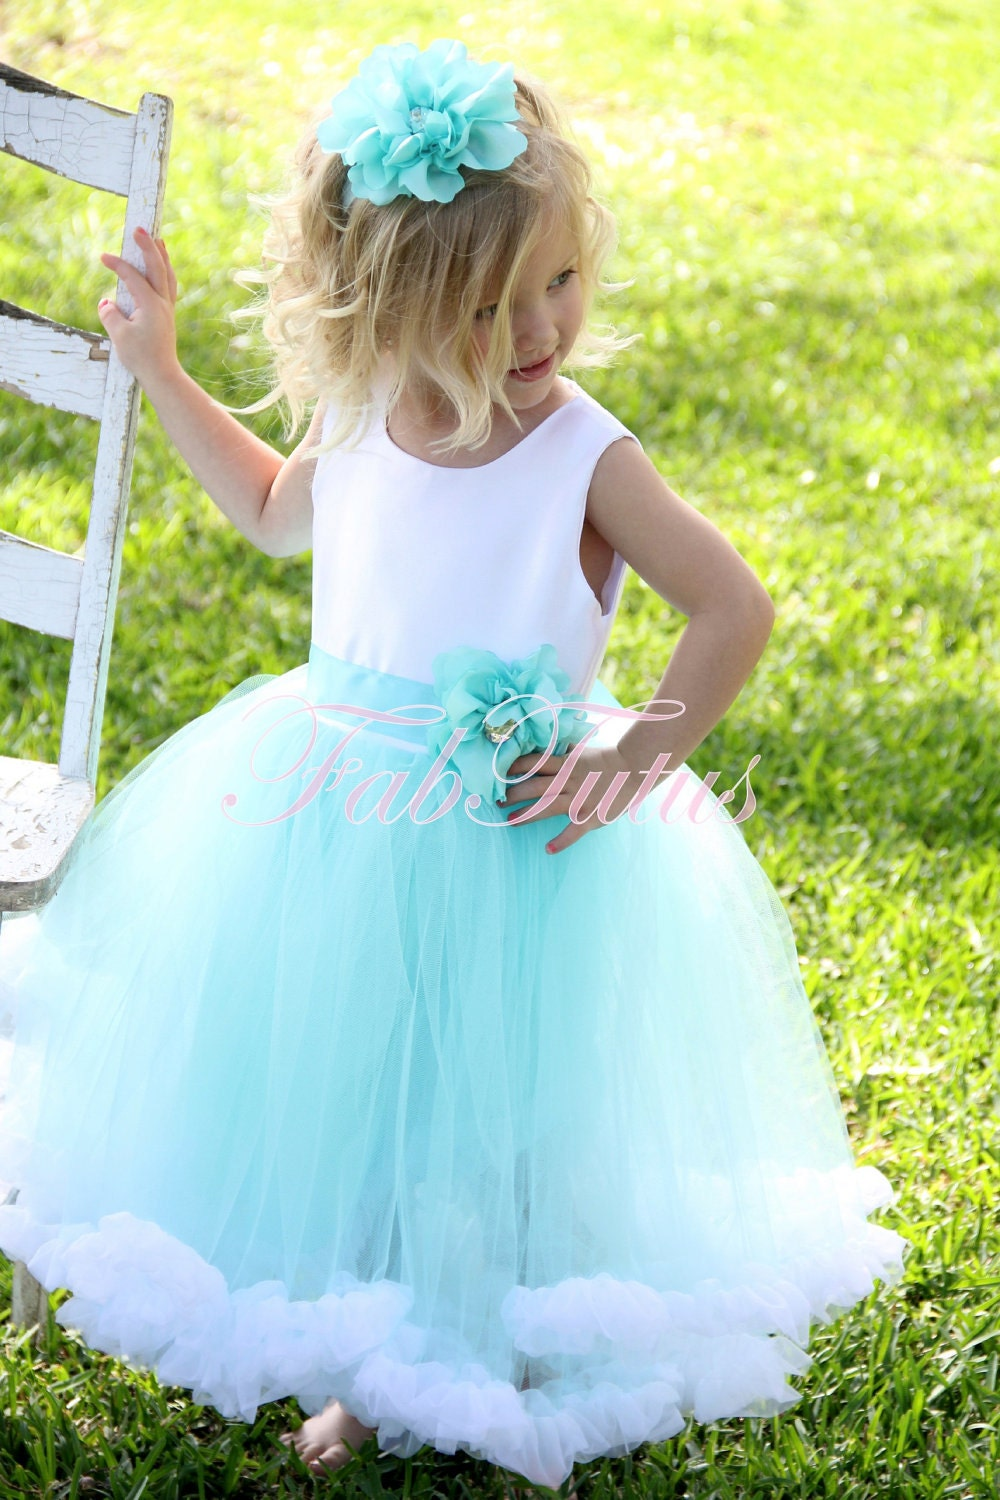 Couture Tiffany Blue flower girl tutu dress with chiffon ruffle and handmade flower pin by FabTutus